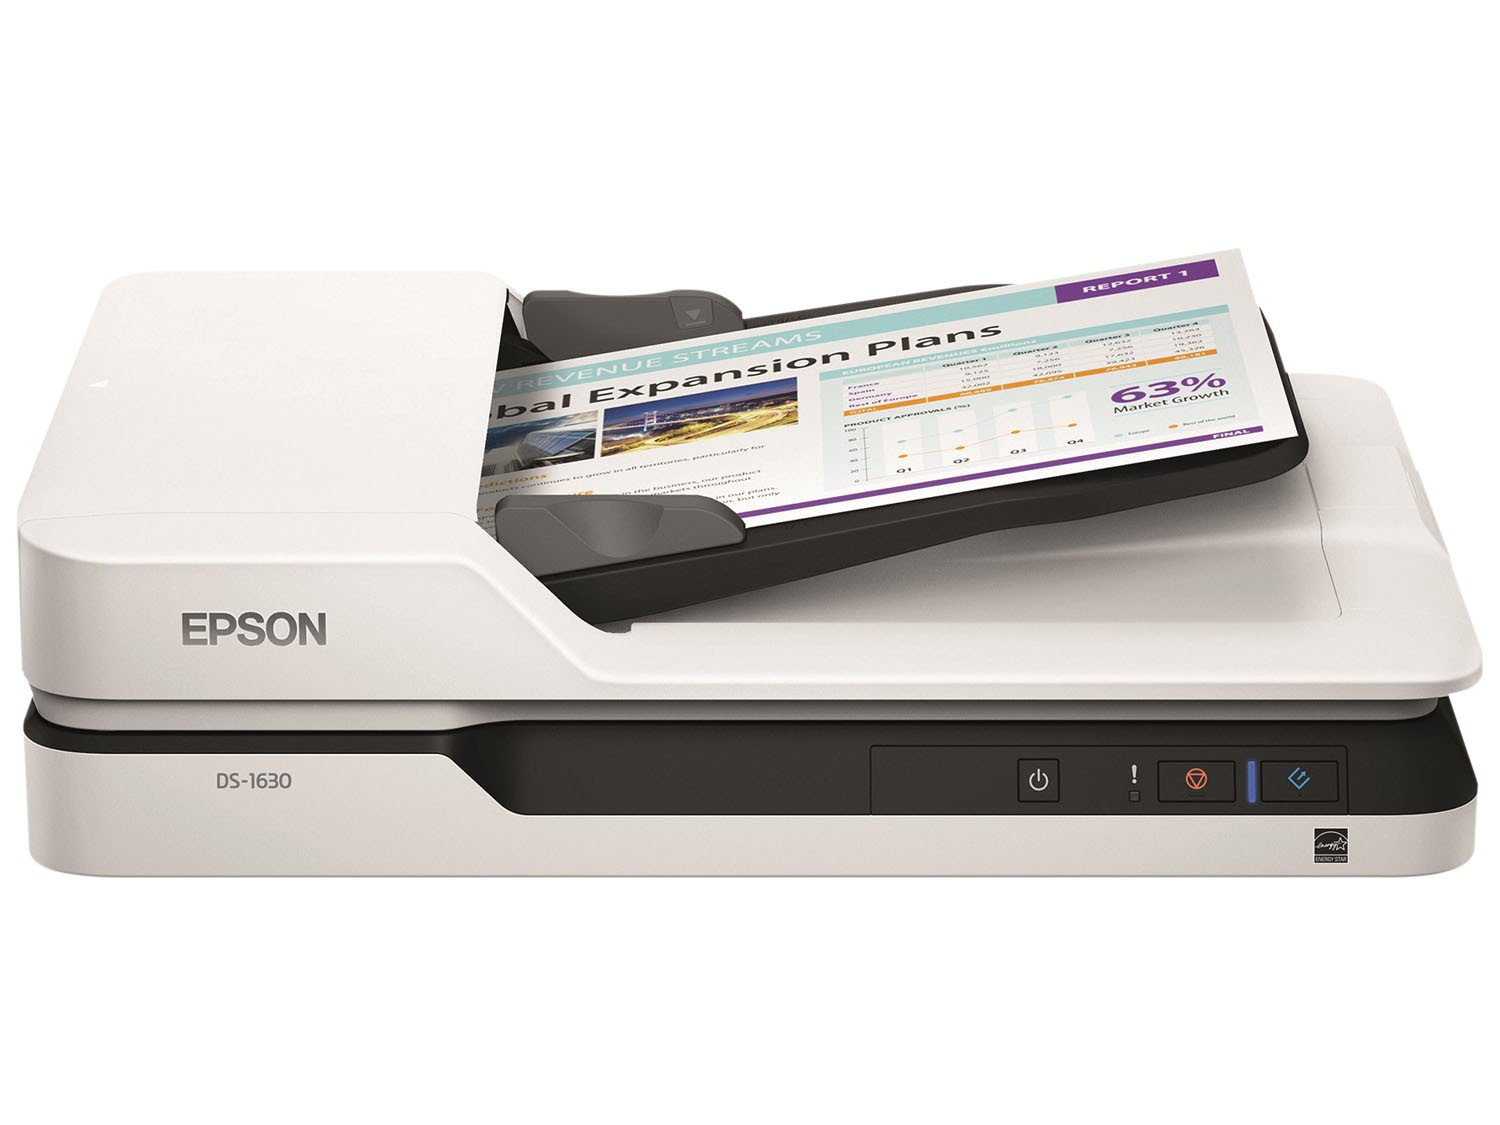 Scanner de Mesa Epson WorkForce DS-1630 - Colorido 1200dpi